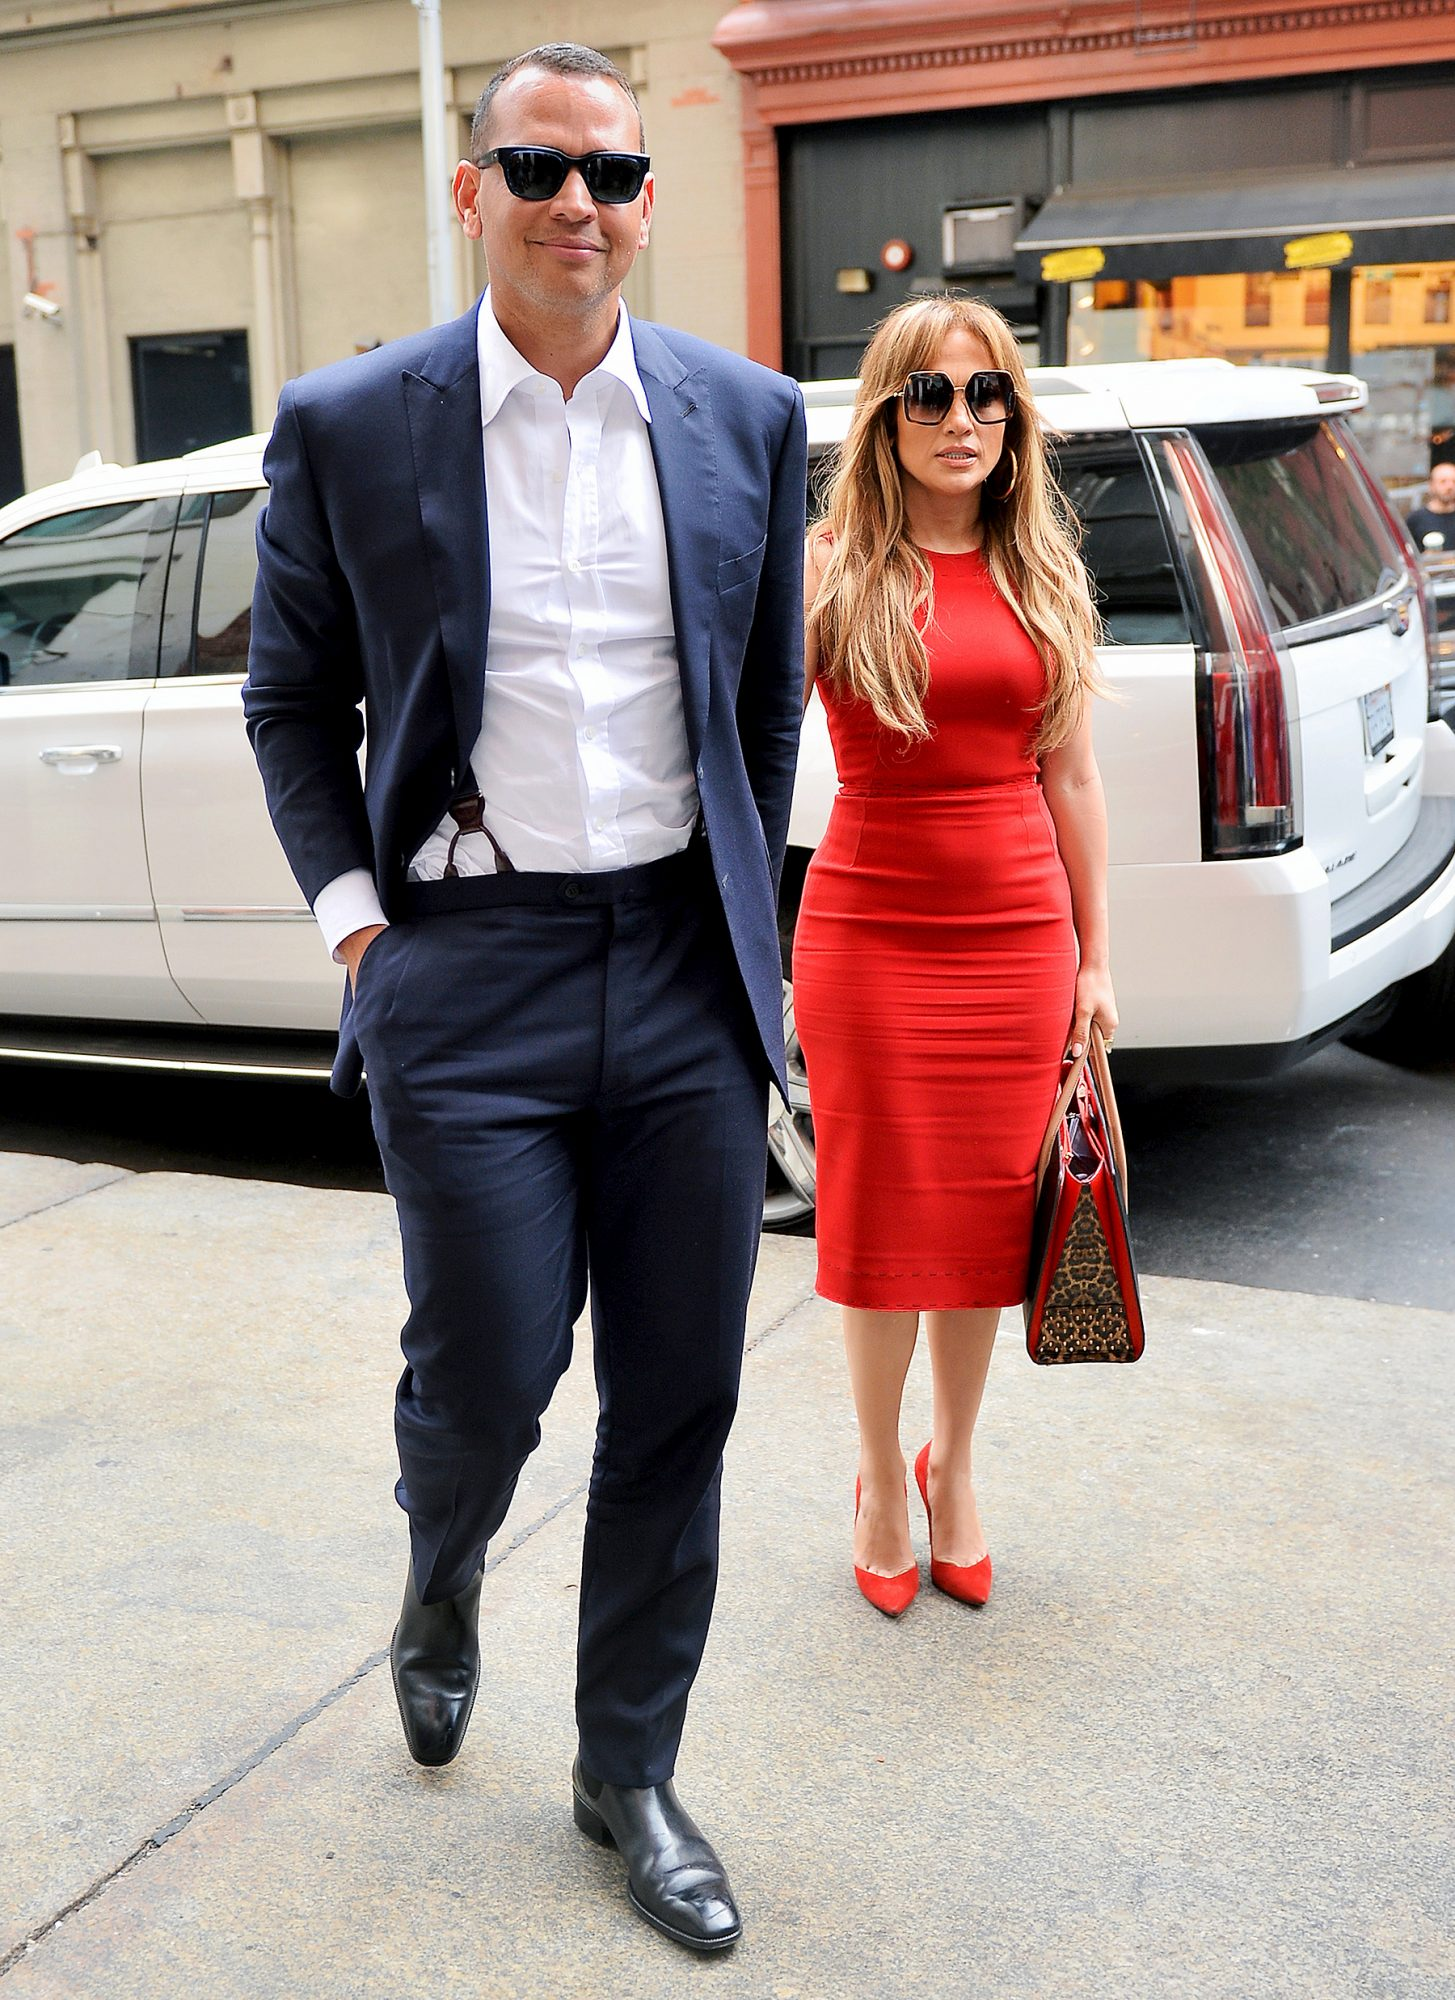 Jennifer Lopez and Alex Rodriguez are a stylish pair as they step out for lunch in NYC